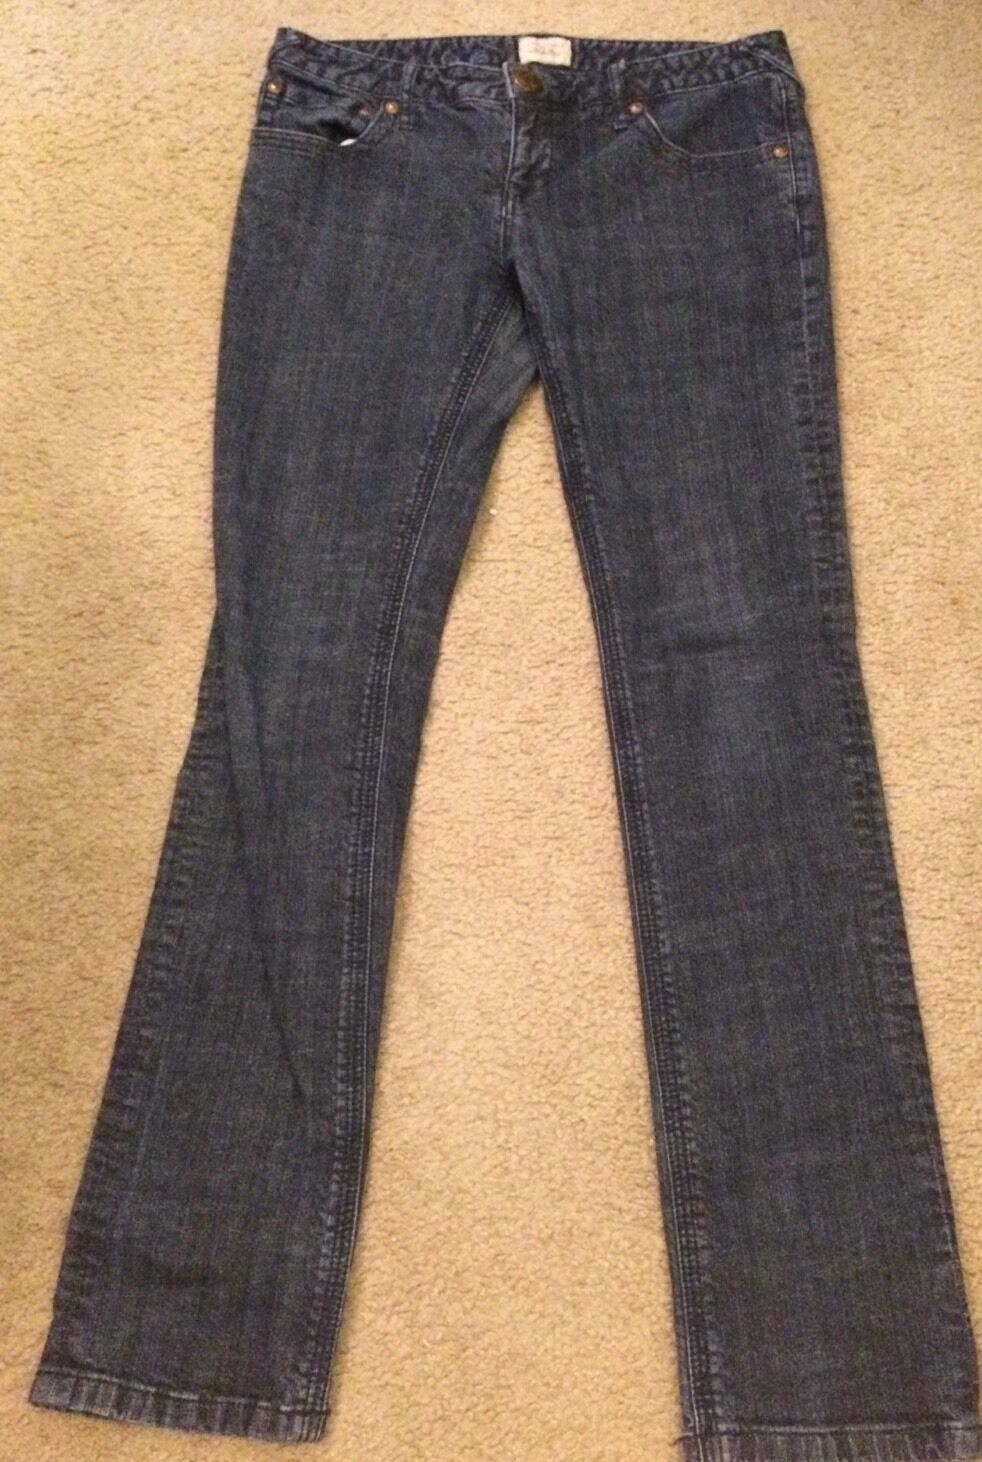 FREE PEOPLE Women's Denim Jeans Straight Slim Dark Wash Low Rise Sz 30 X 32